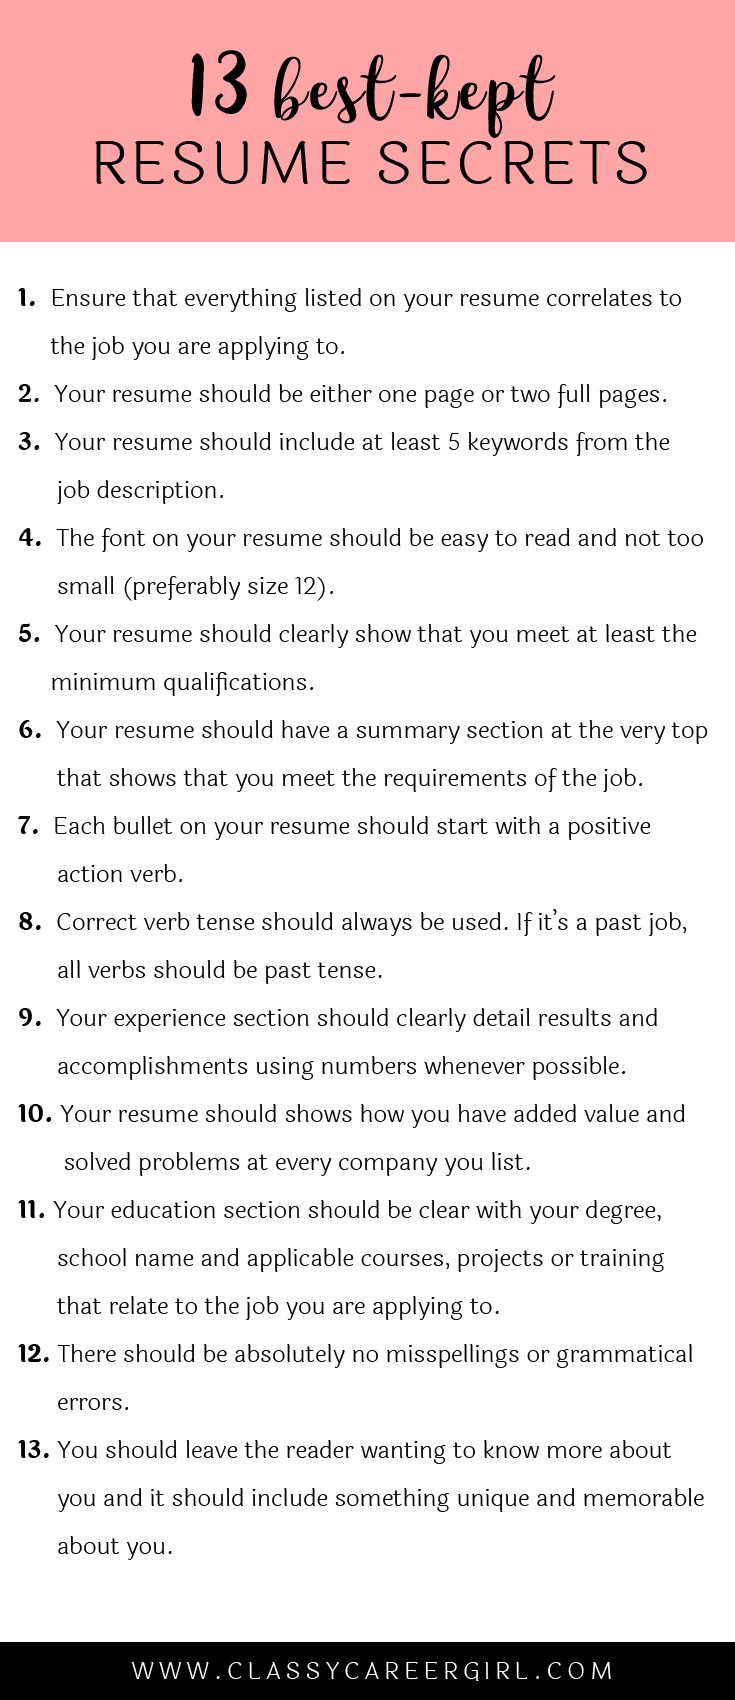 Opposenewapstandardsus  Nice  Ideas About Resume On Pinterest  Cv Format Resume Cv And  With Outstanding Some Hiring Managers Will Toss Your Resume Out If You Dont Know These  With Captivating Illustrator Resume Template Also Examples Of Rn Resumes In Addition Product Manager Resume Examples And Changing Careers Resume As Well As Perfect Resume Objective Additionally Entry Level Resume Example From Pinterestcom With Opposenewapstandardsus  Outstanding  Ideas About Resume On Pinterest  Cv Format Resume Cv And  With Captivating Some Hiring Managers Will Toss Your Resume Out If You Dont Know These  And Nice Illustrator Resume Template Also Examples Of Rn Resumes In Addition Product Manager Resume Examples From Pinterestcom